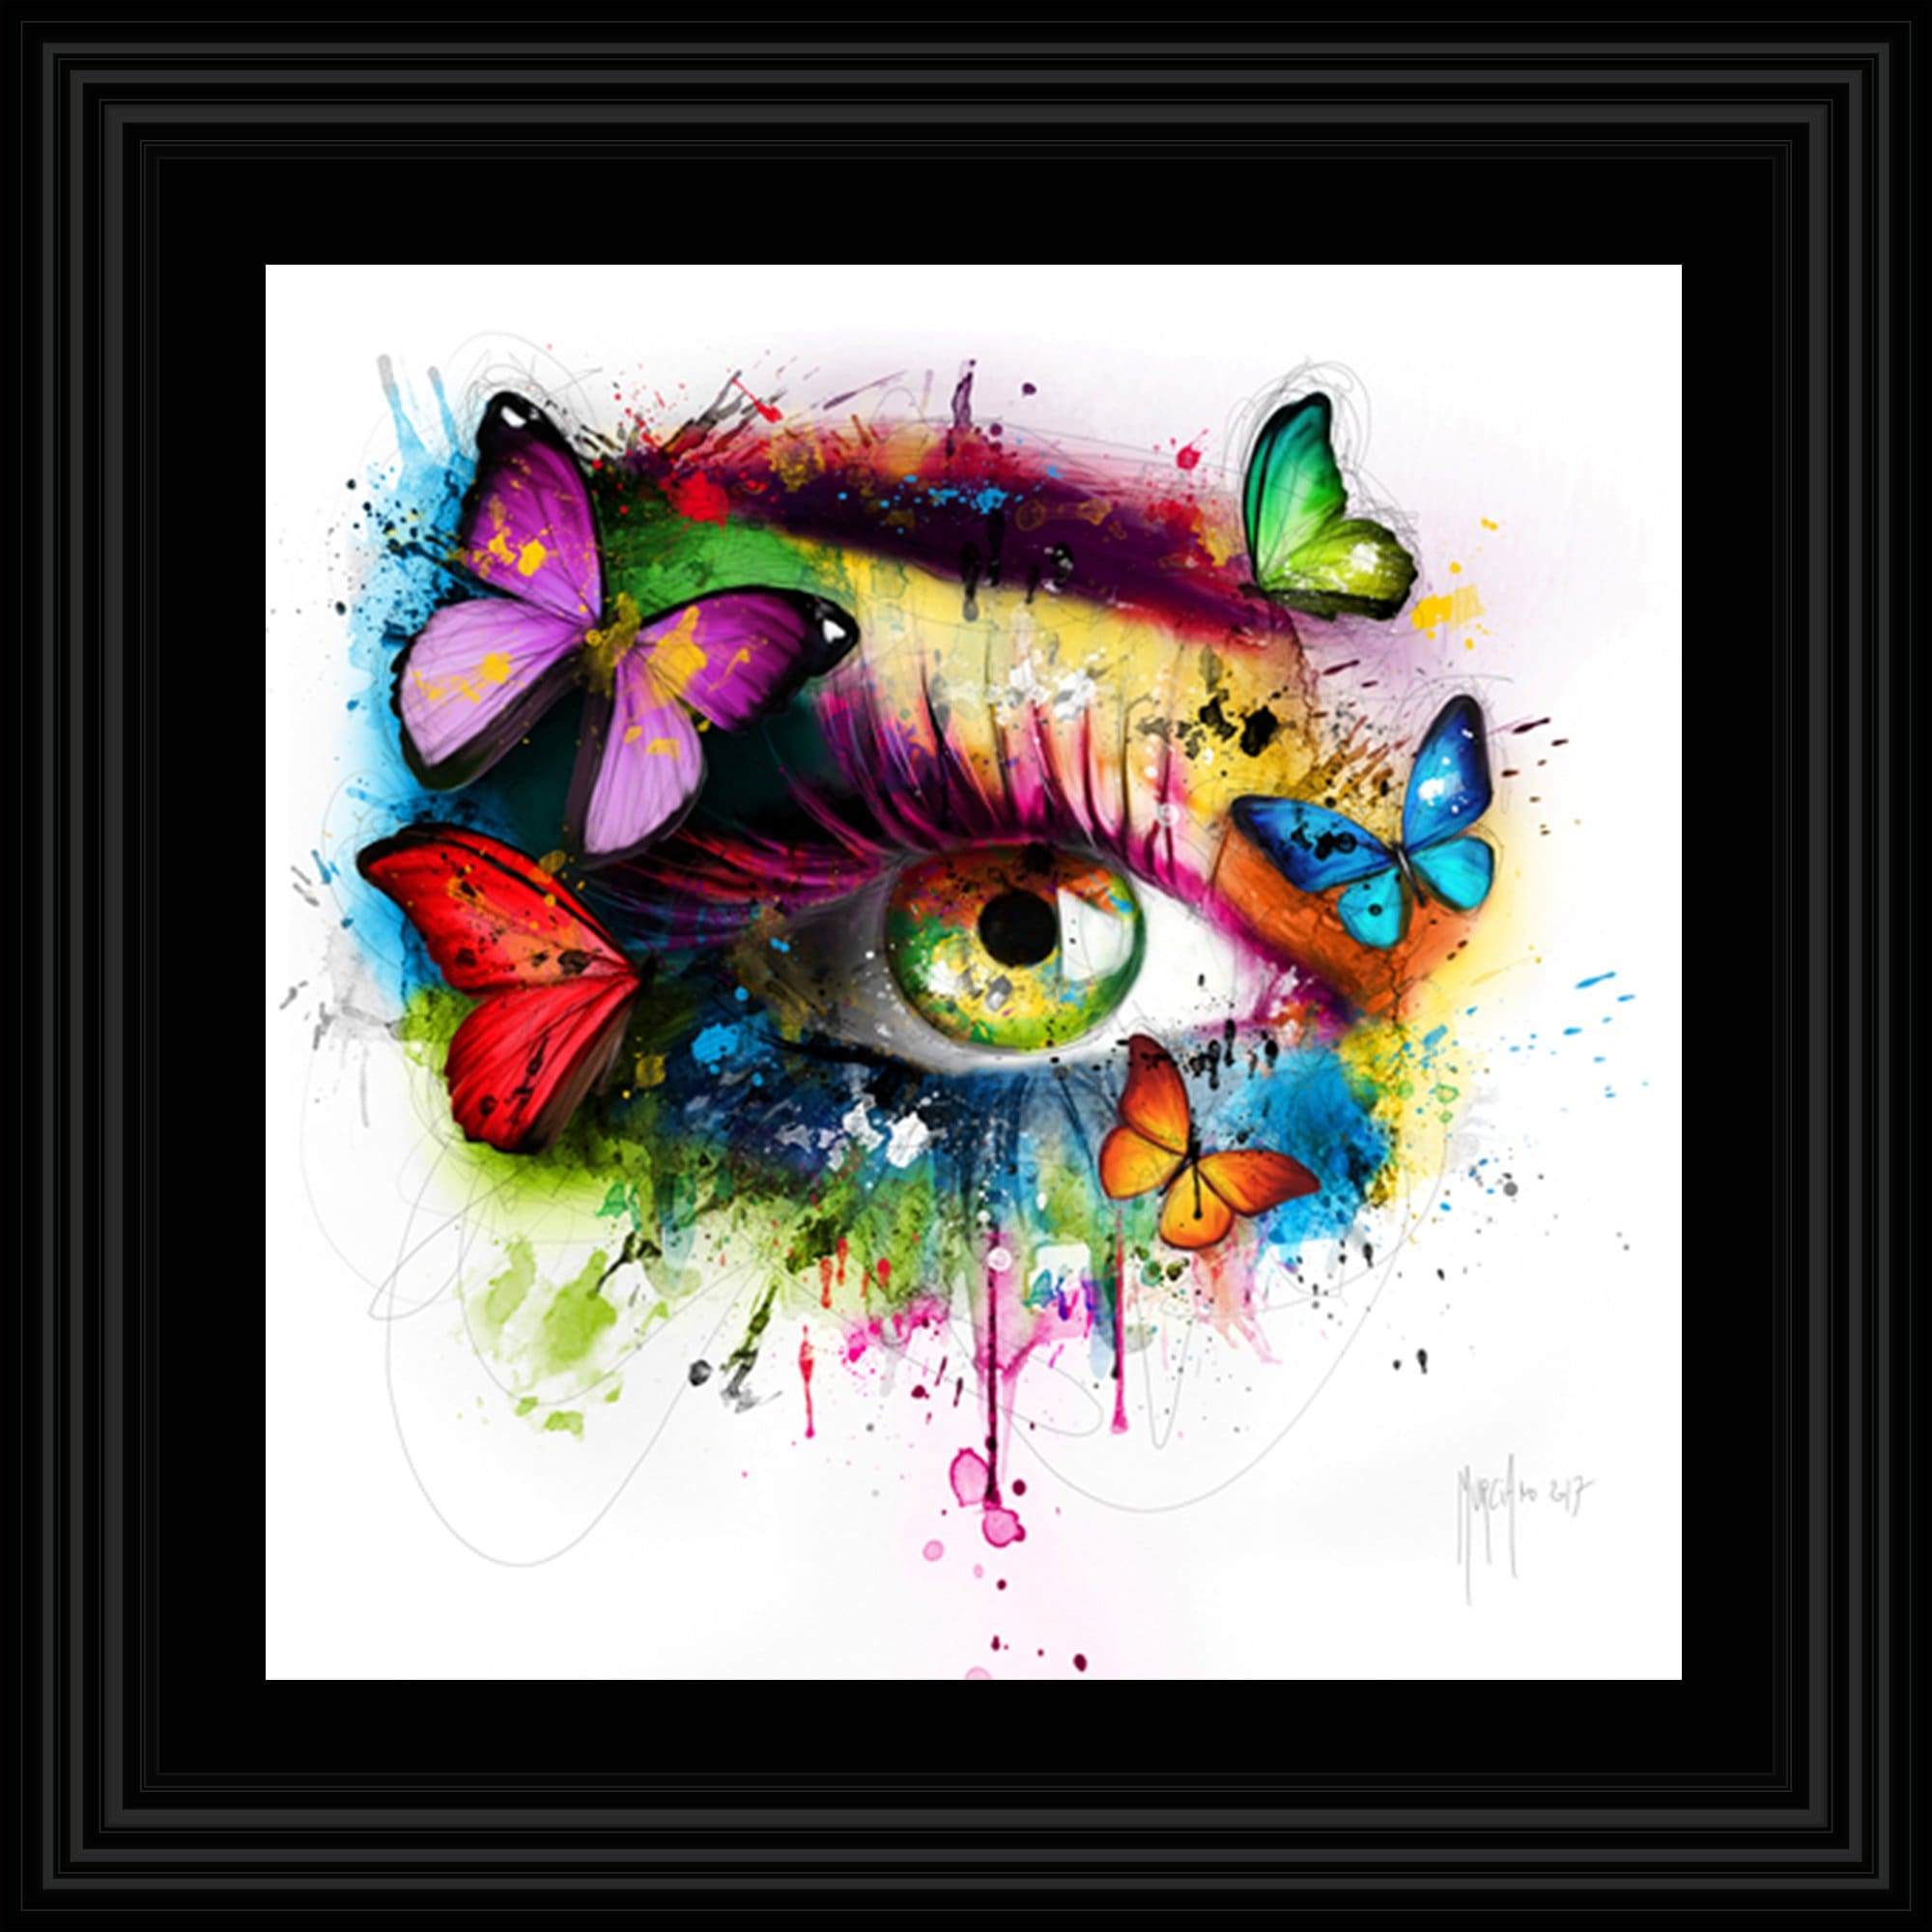 Le Miroir by Patrice Murciano